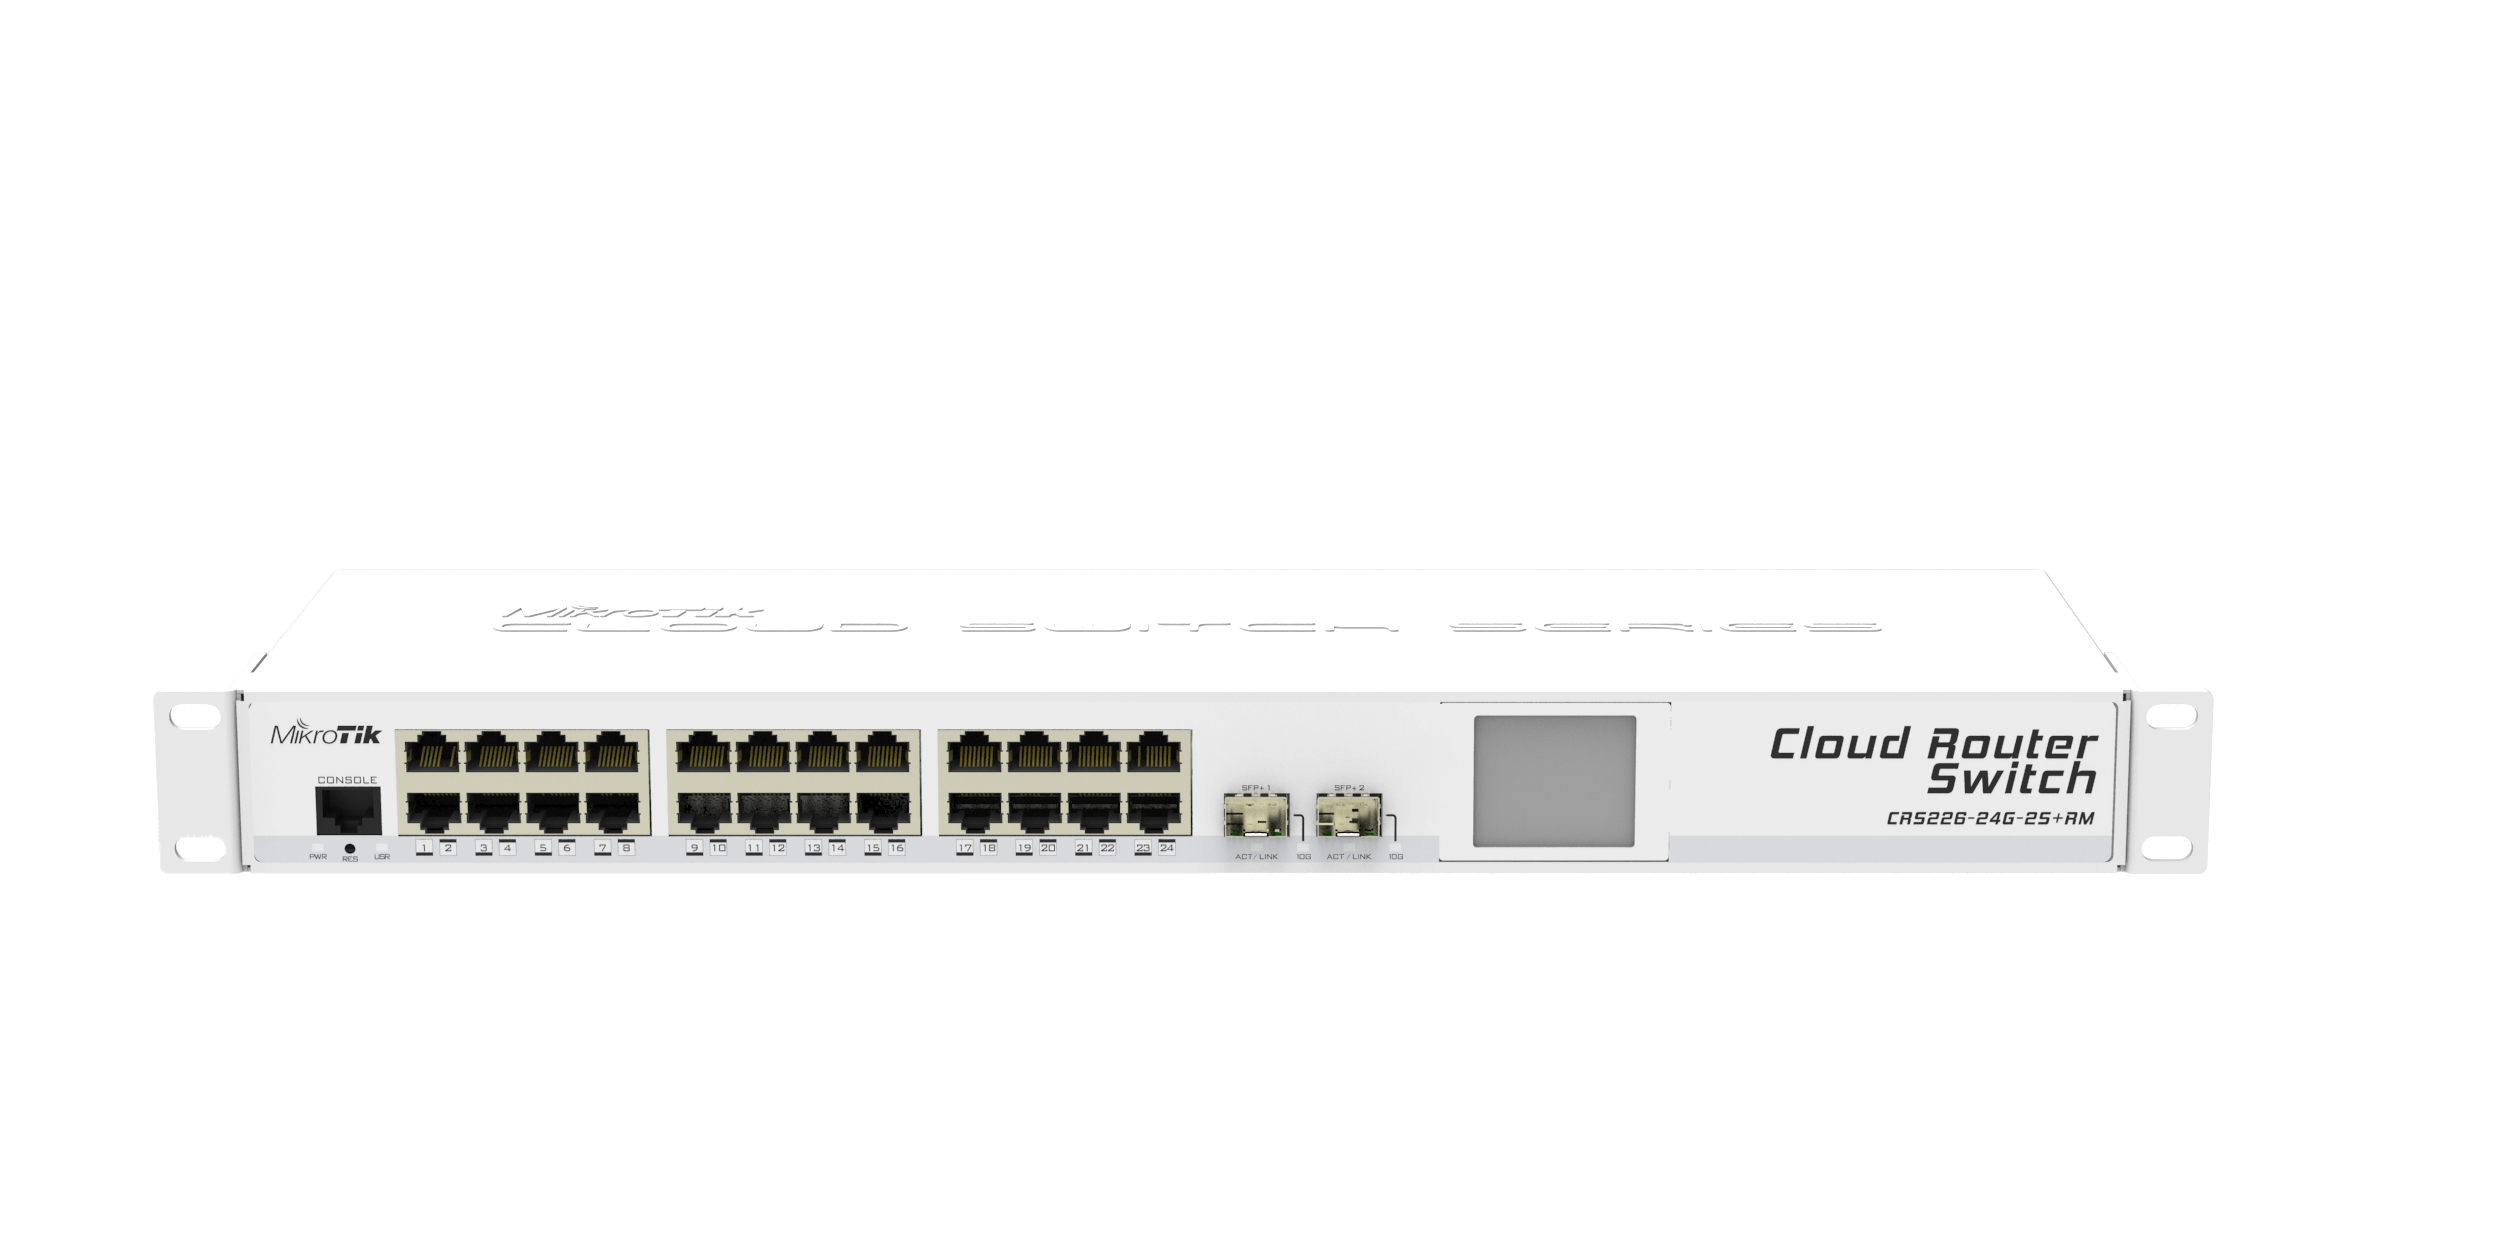 Mikrotik Routers And Wireless Products Crs226 24g 2s Rm